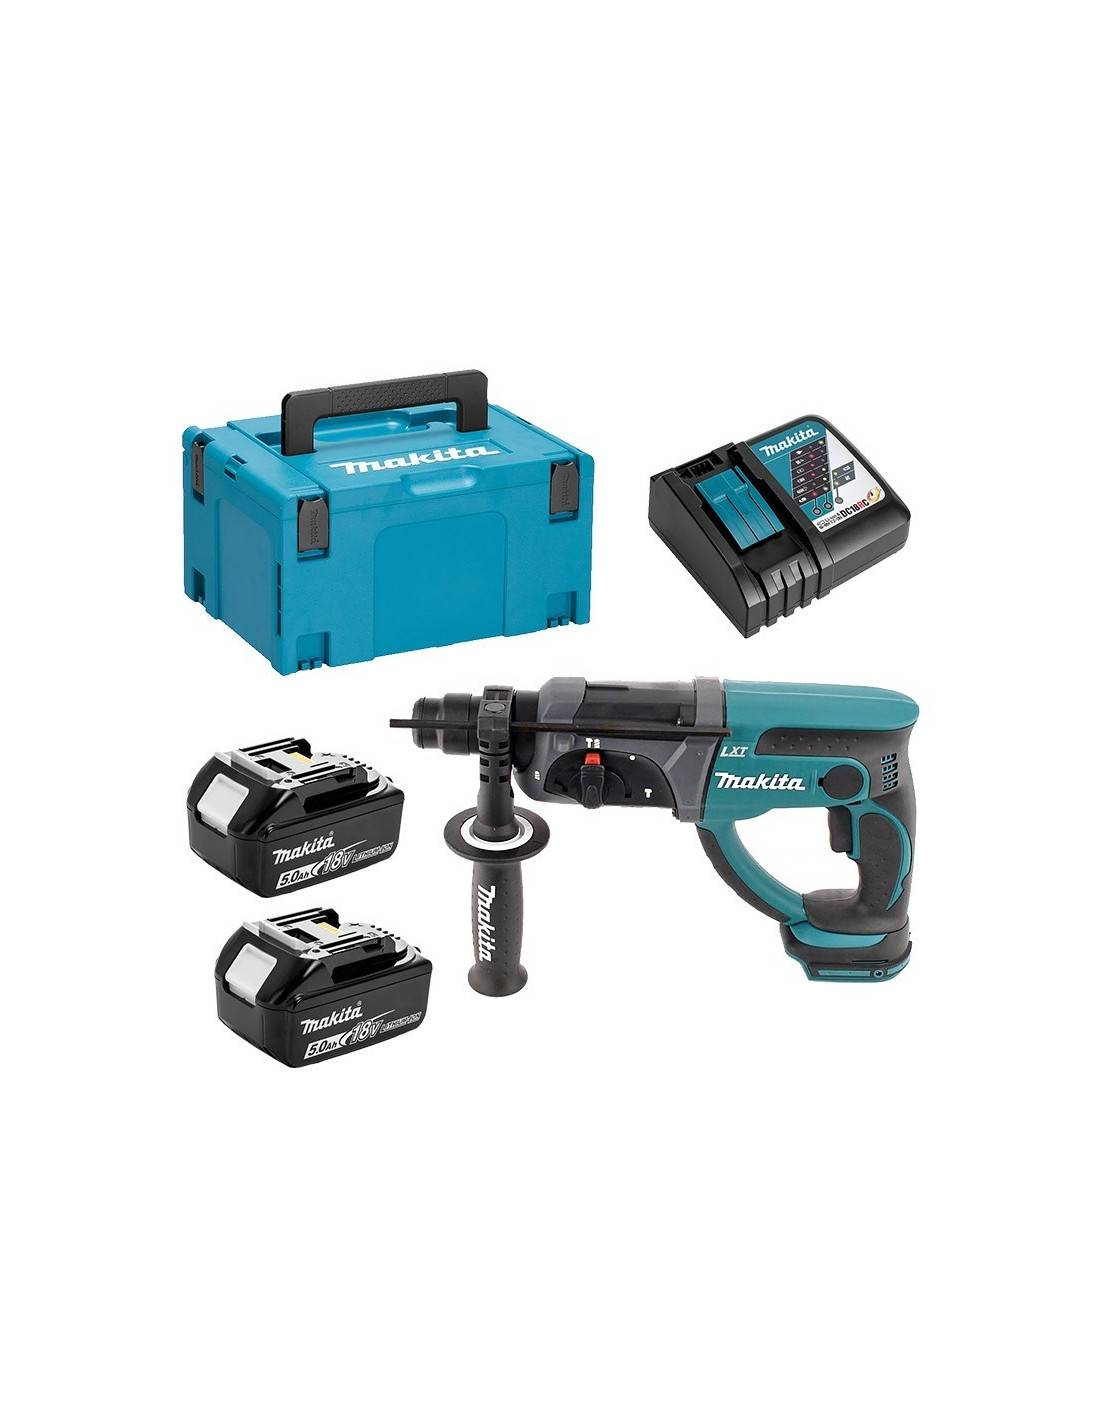 Pack Perforateur Burineur SDS+ 18V + 2 batteries 5Ah en coffret MAKPAC - MAKITA - DHR202RTJ